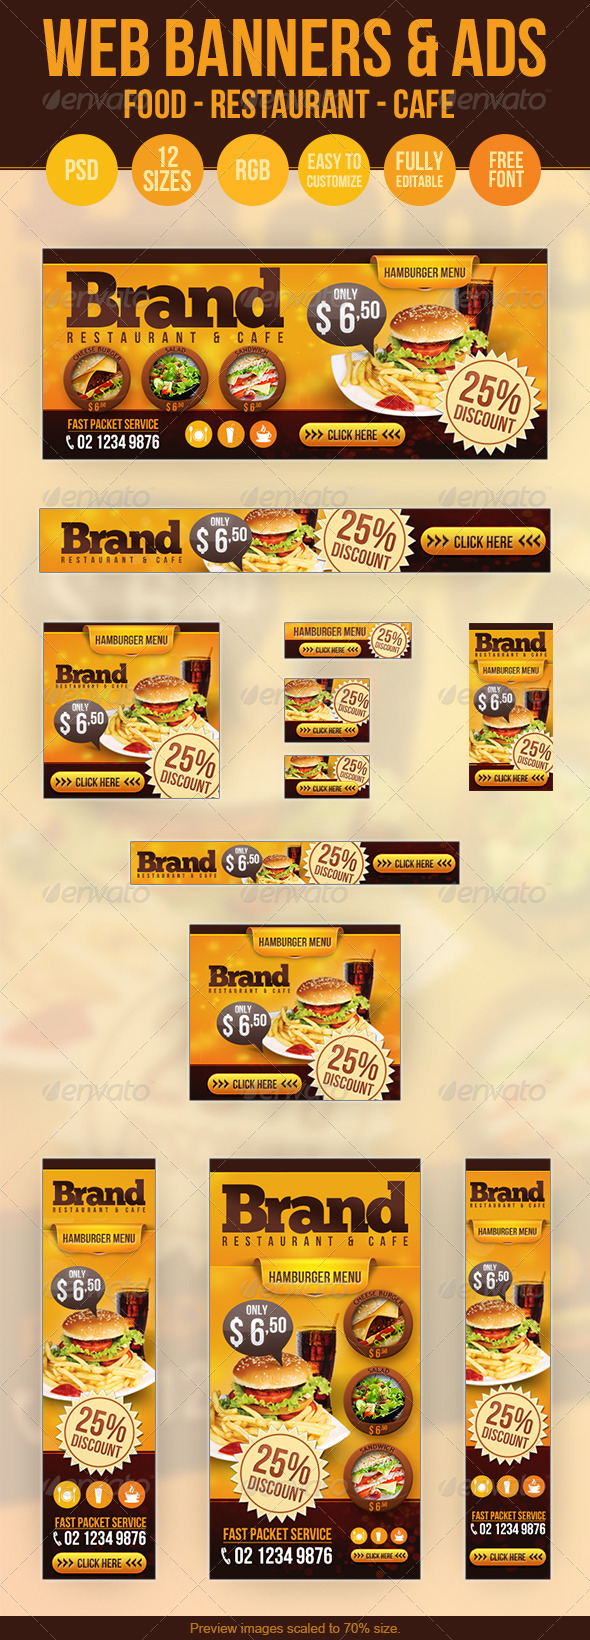 Food Web Banners & Advertise - PSD Templates - Banners & Ads Web Elements